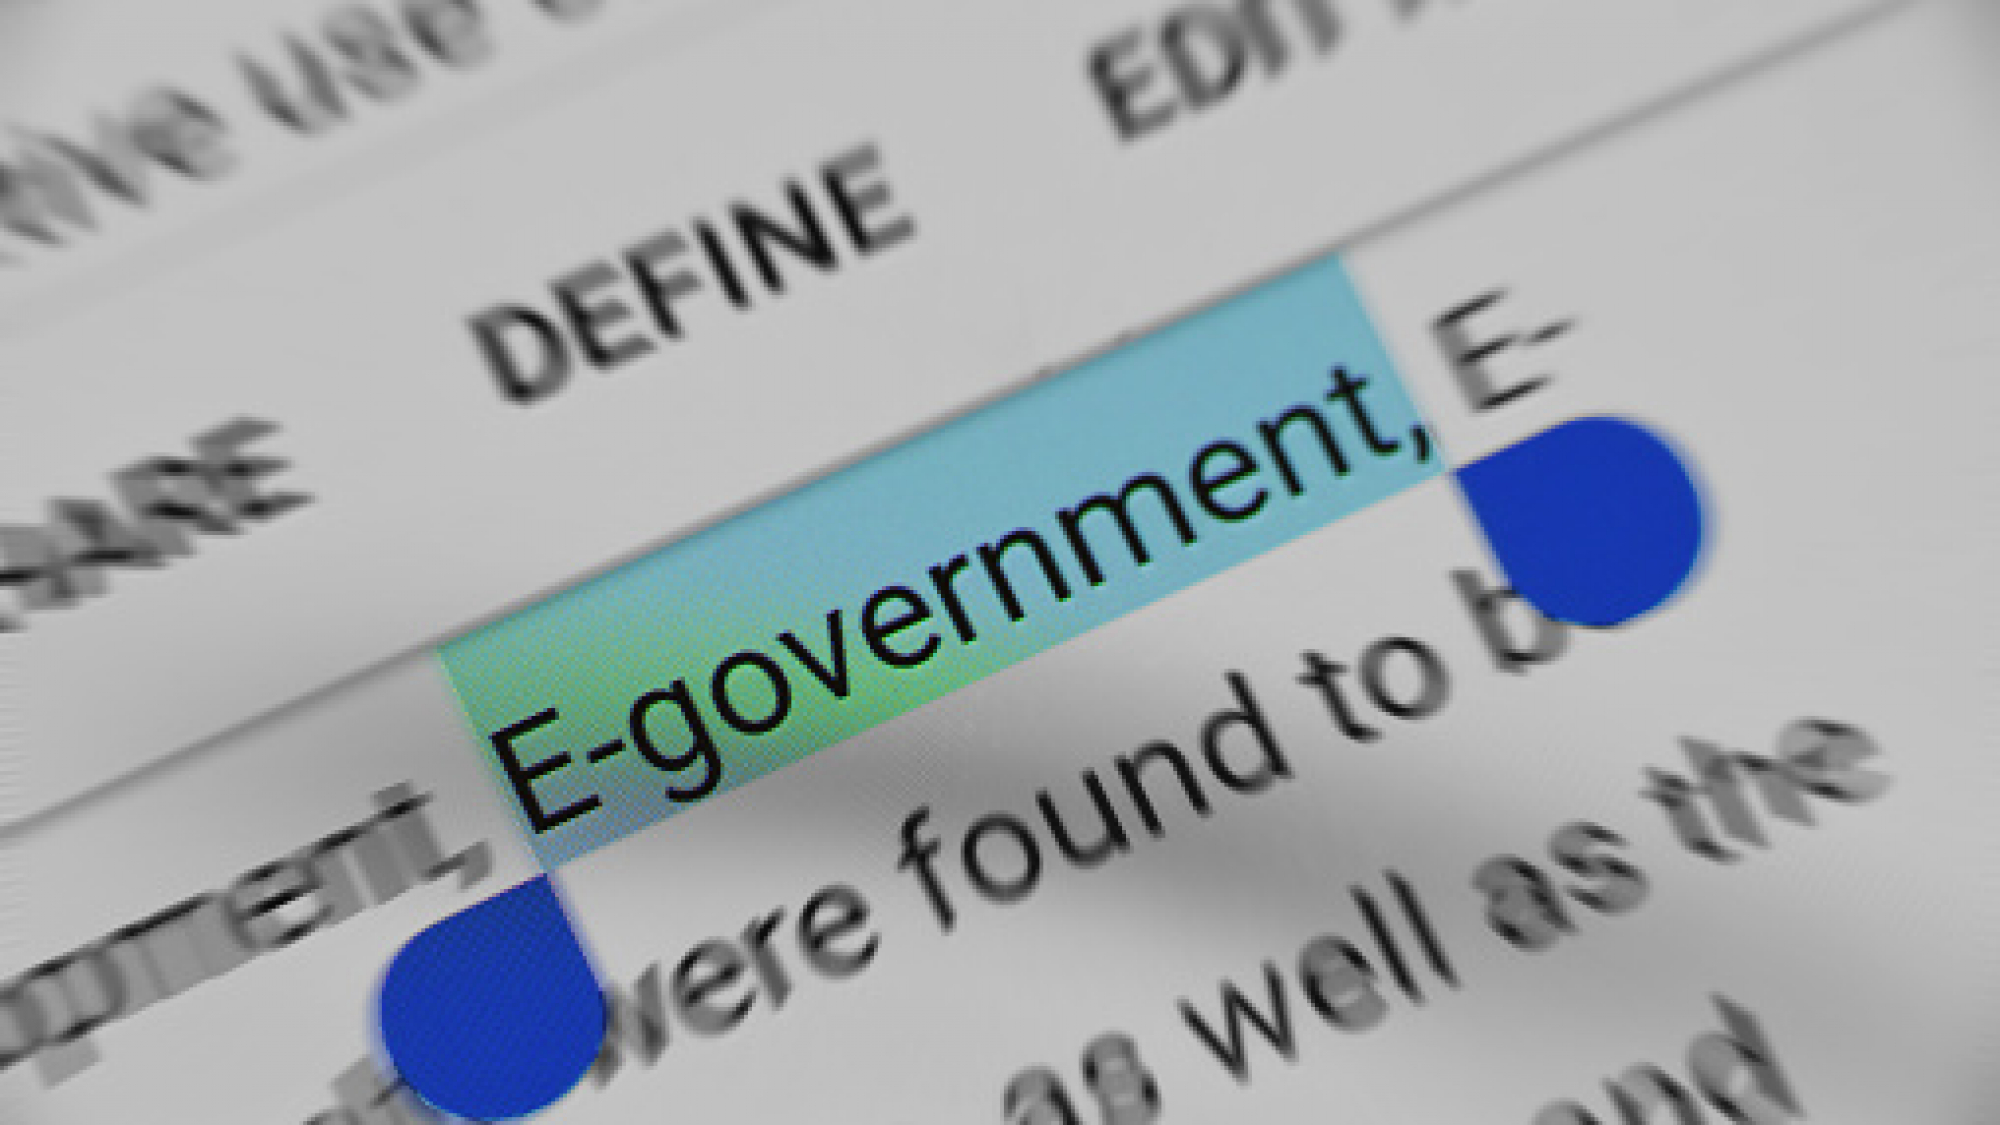 E- Government text selection online